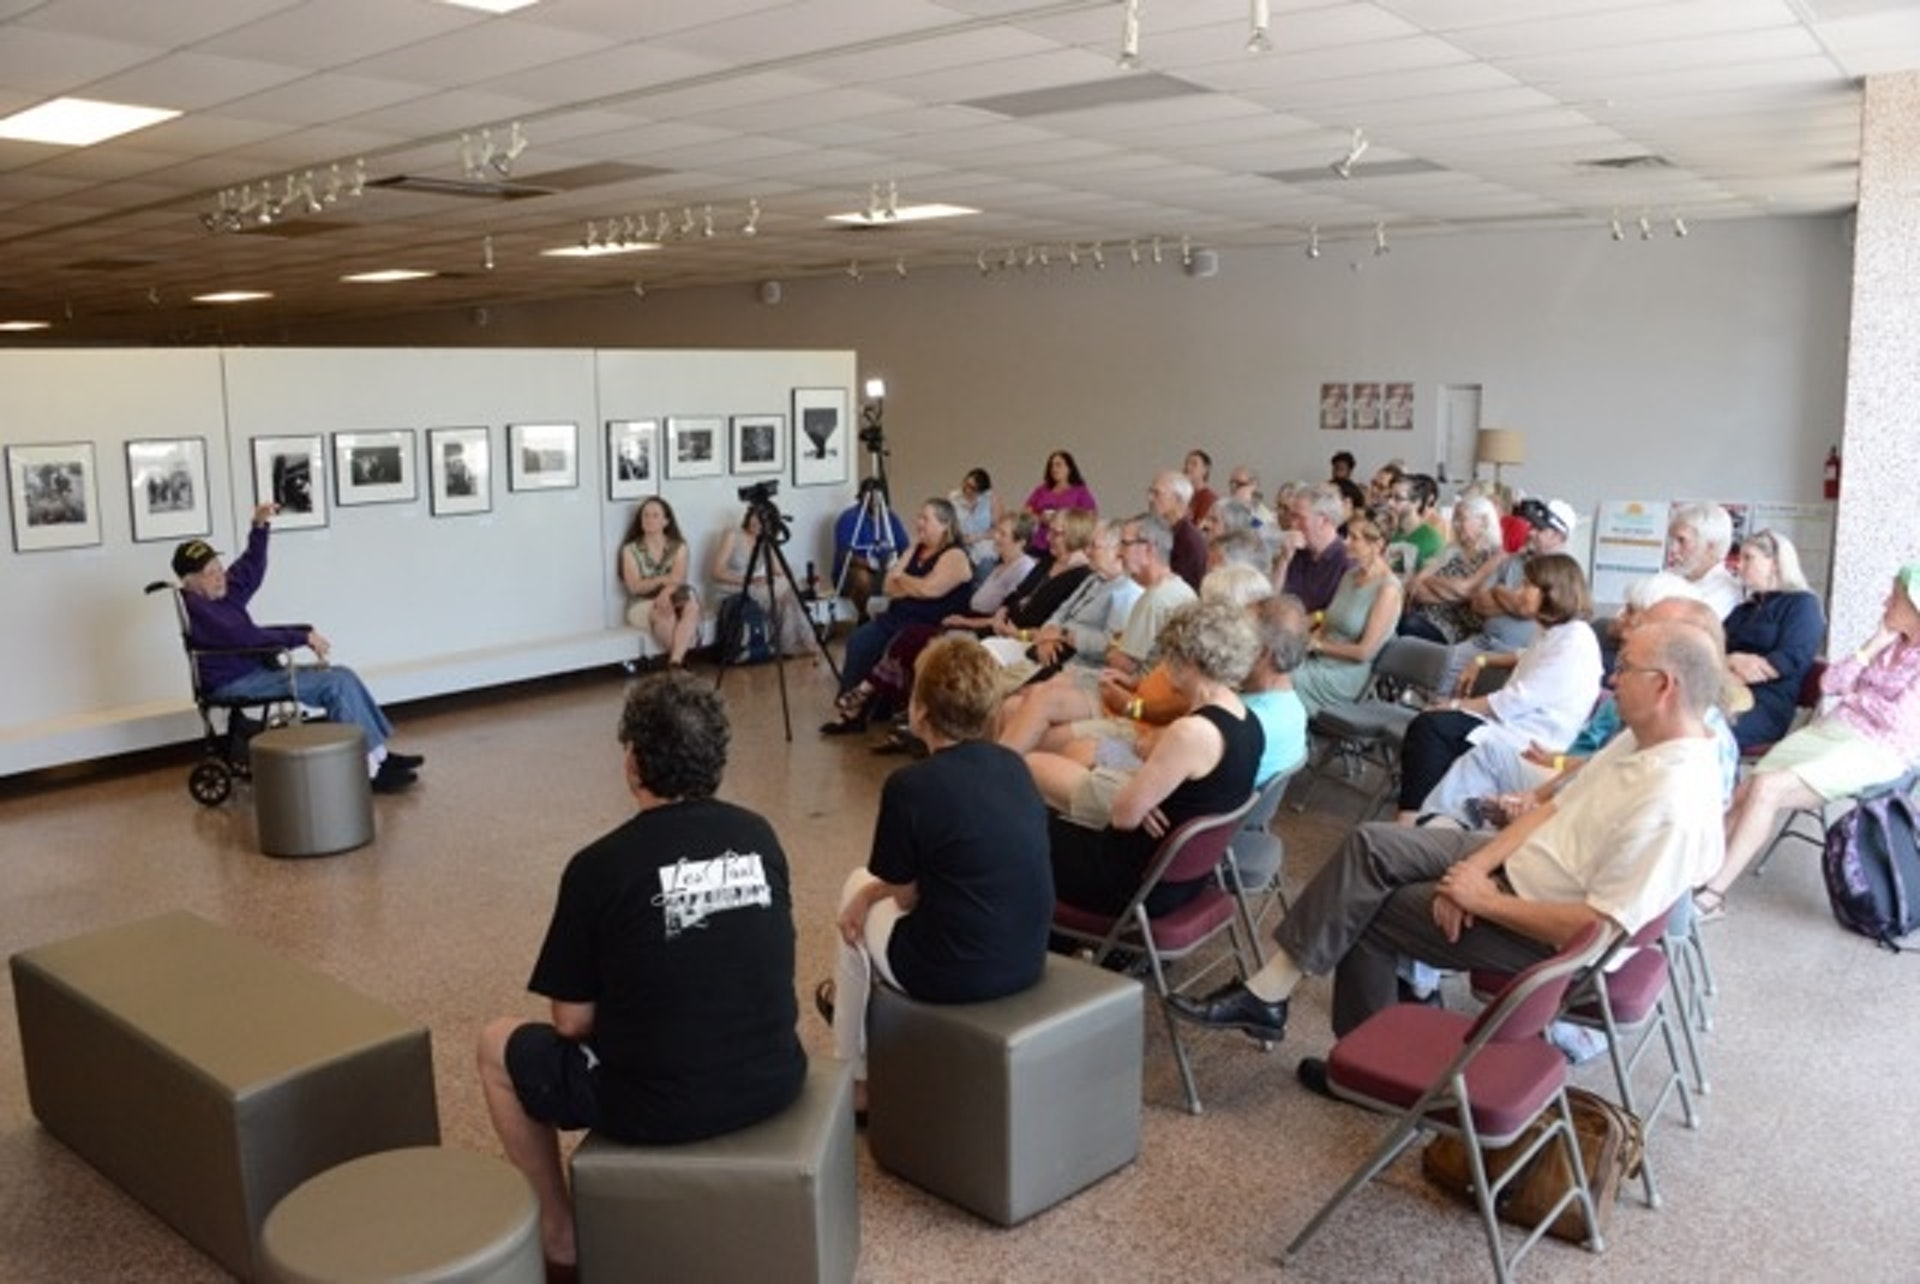 Art-Shay-crowd-at-his-talk-during-Nelson-Algren-Festival-2016-06-25